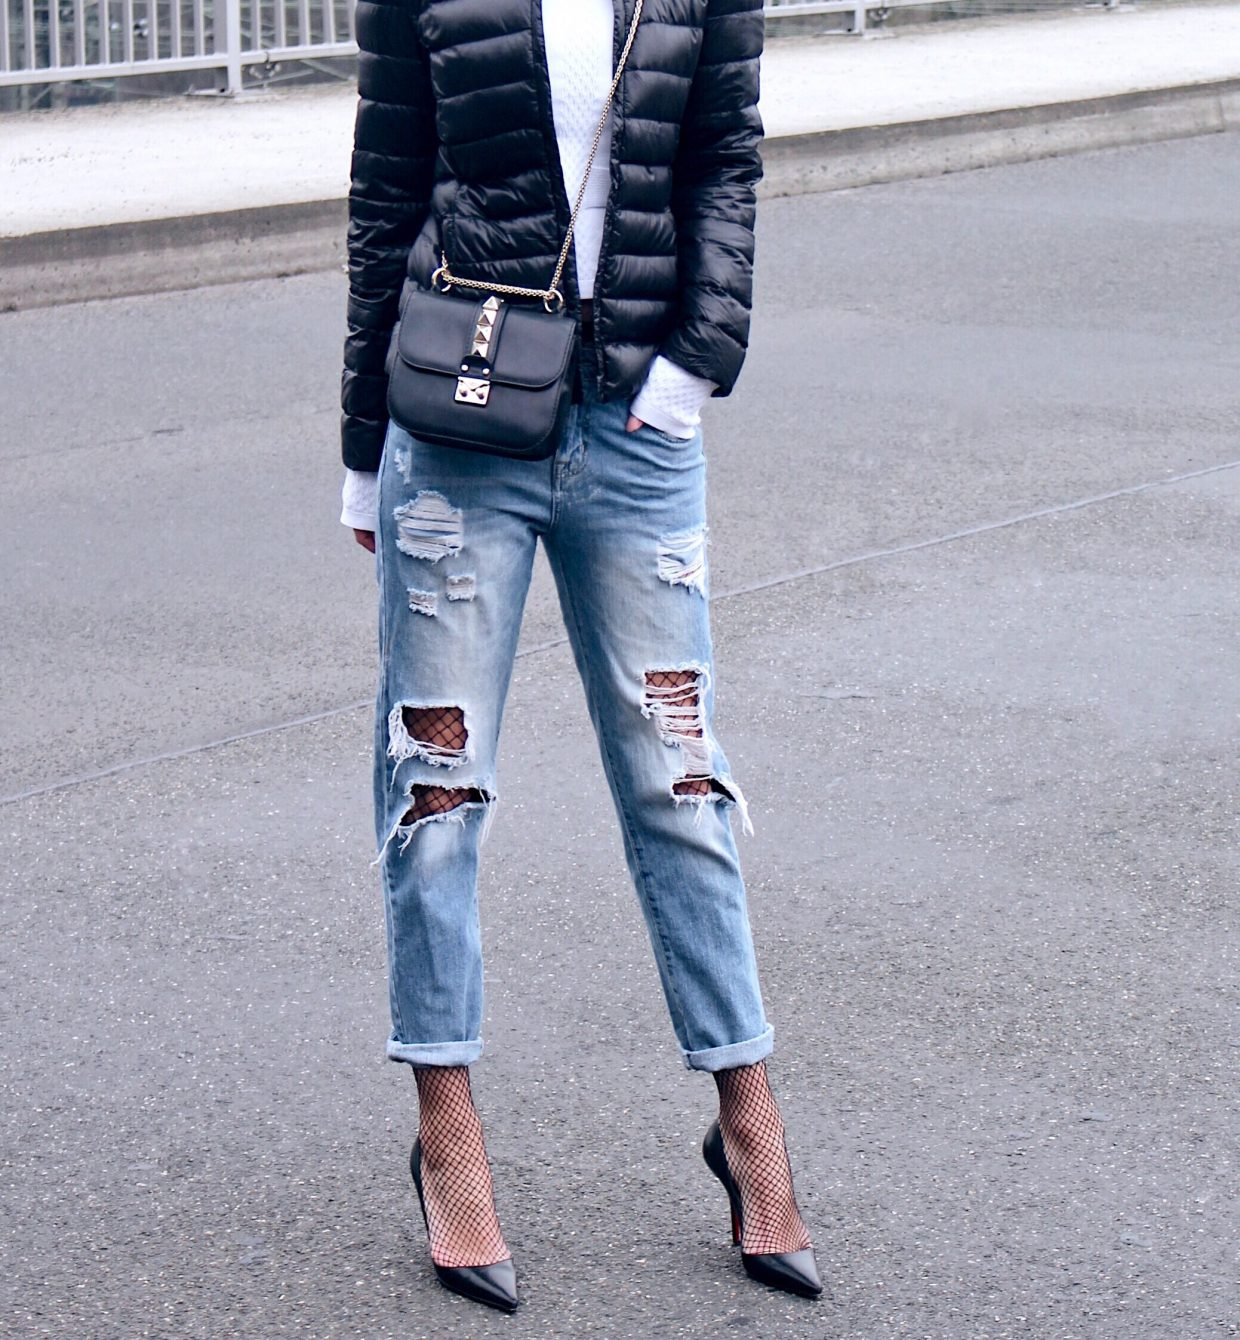 Trending: Fishnet X Denim!